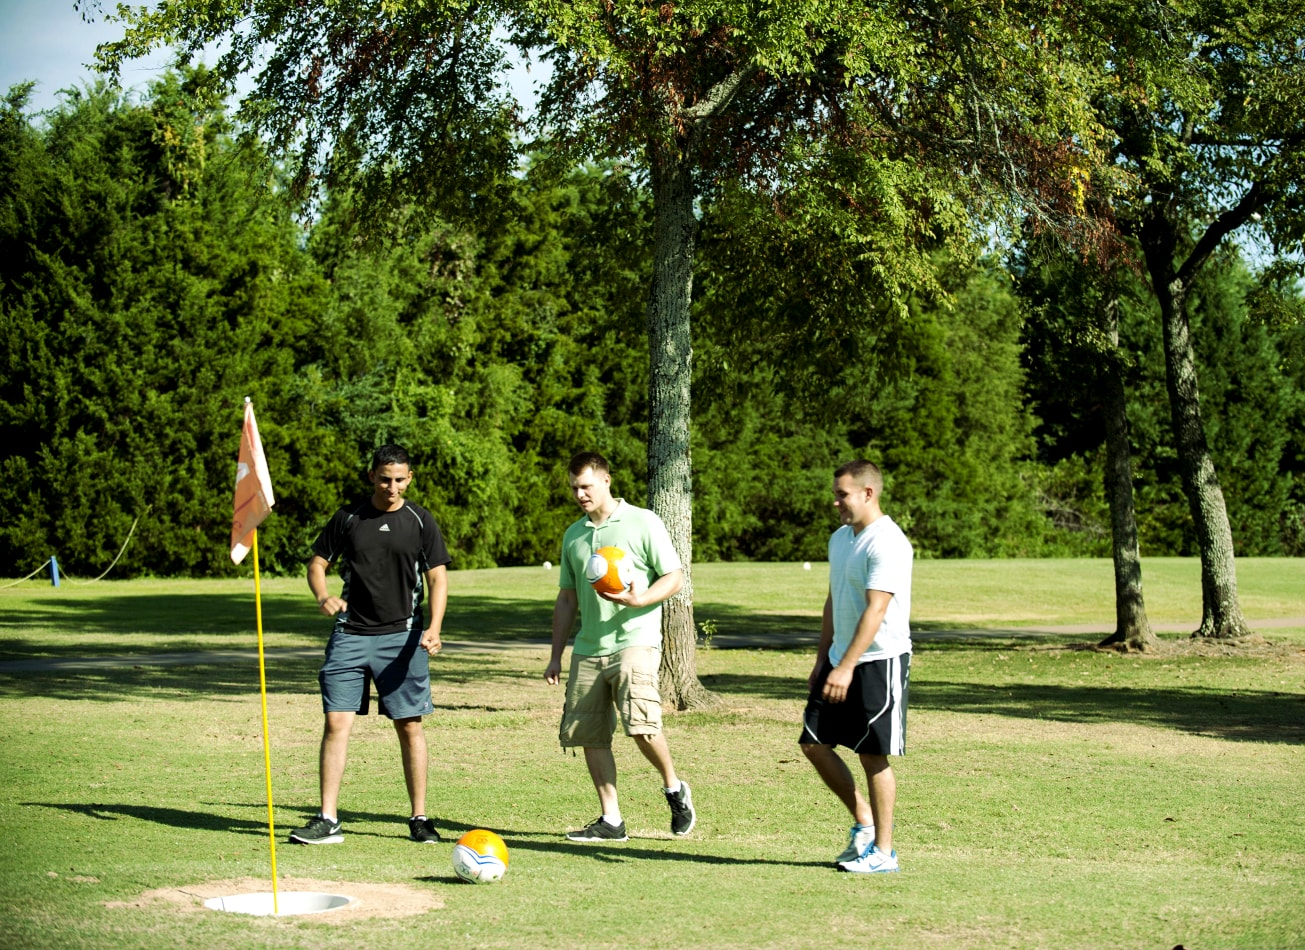 footgolf foot golf football dusseldorf activites vimigo